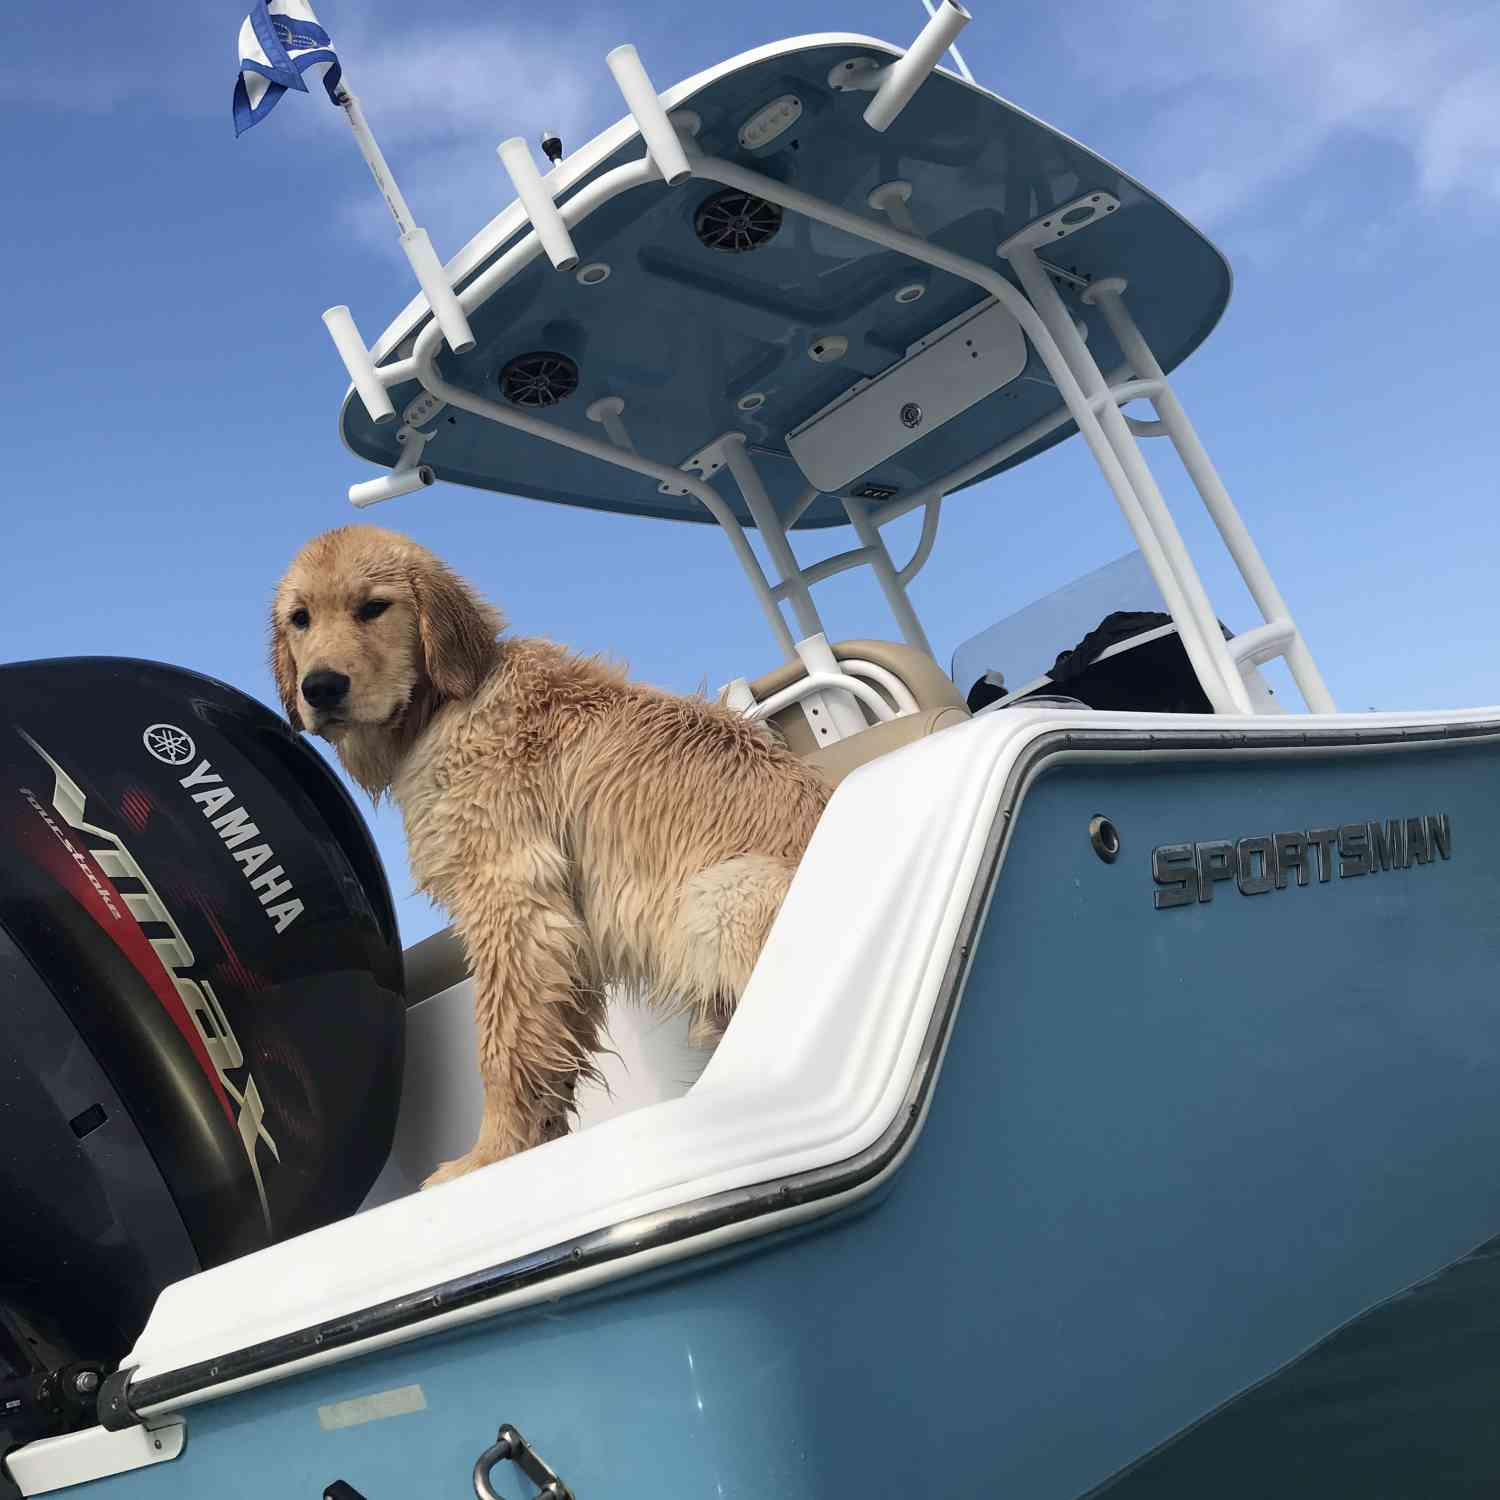 Title: Long Day on the Water - On board their Sportsman Heritage 211 Center Console - Location: Wilmington, North Carolina. Participating in the Photo Contest #SportsmanJune2019